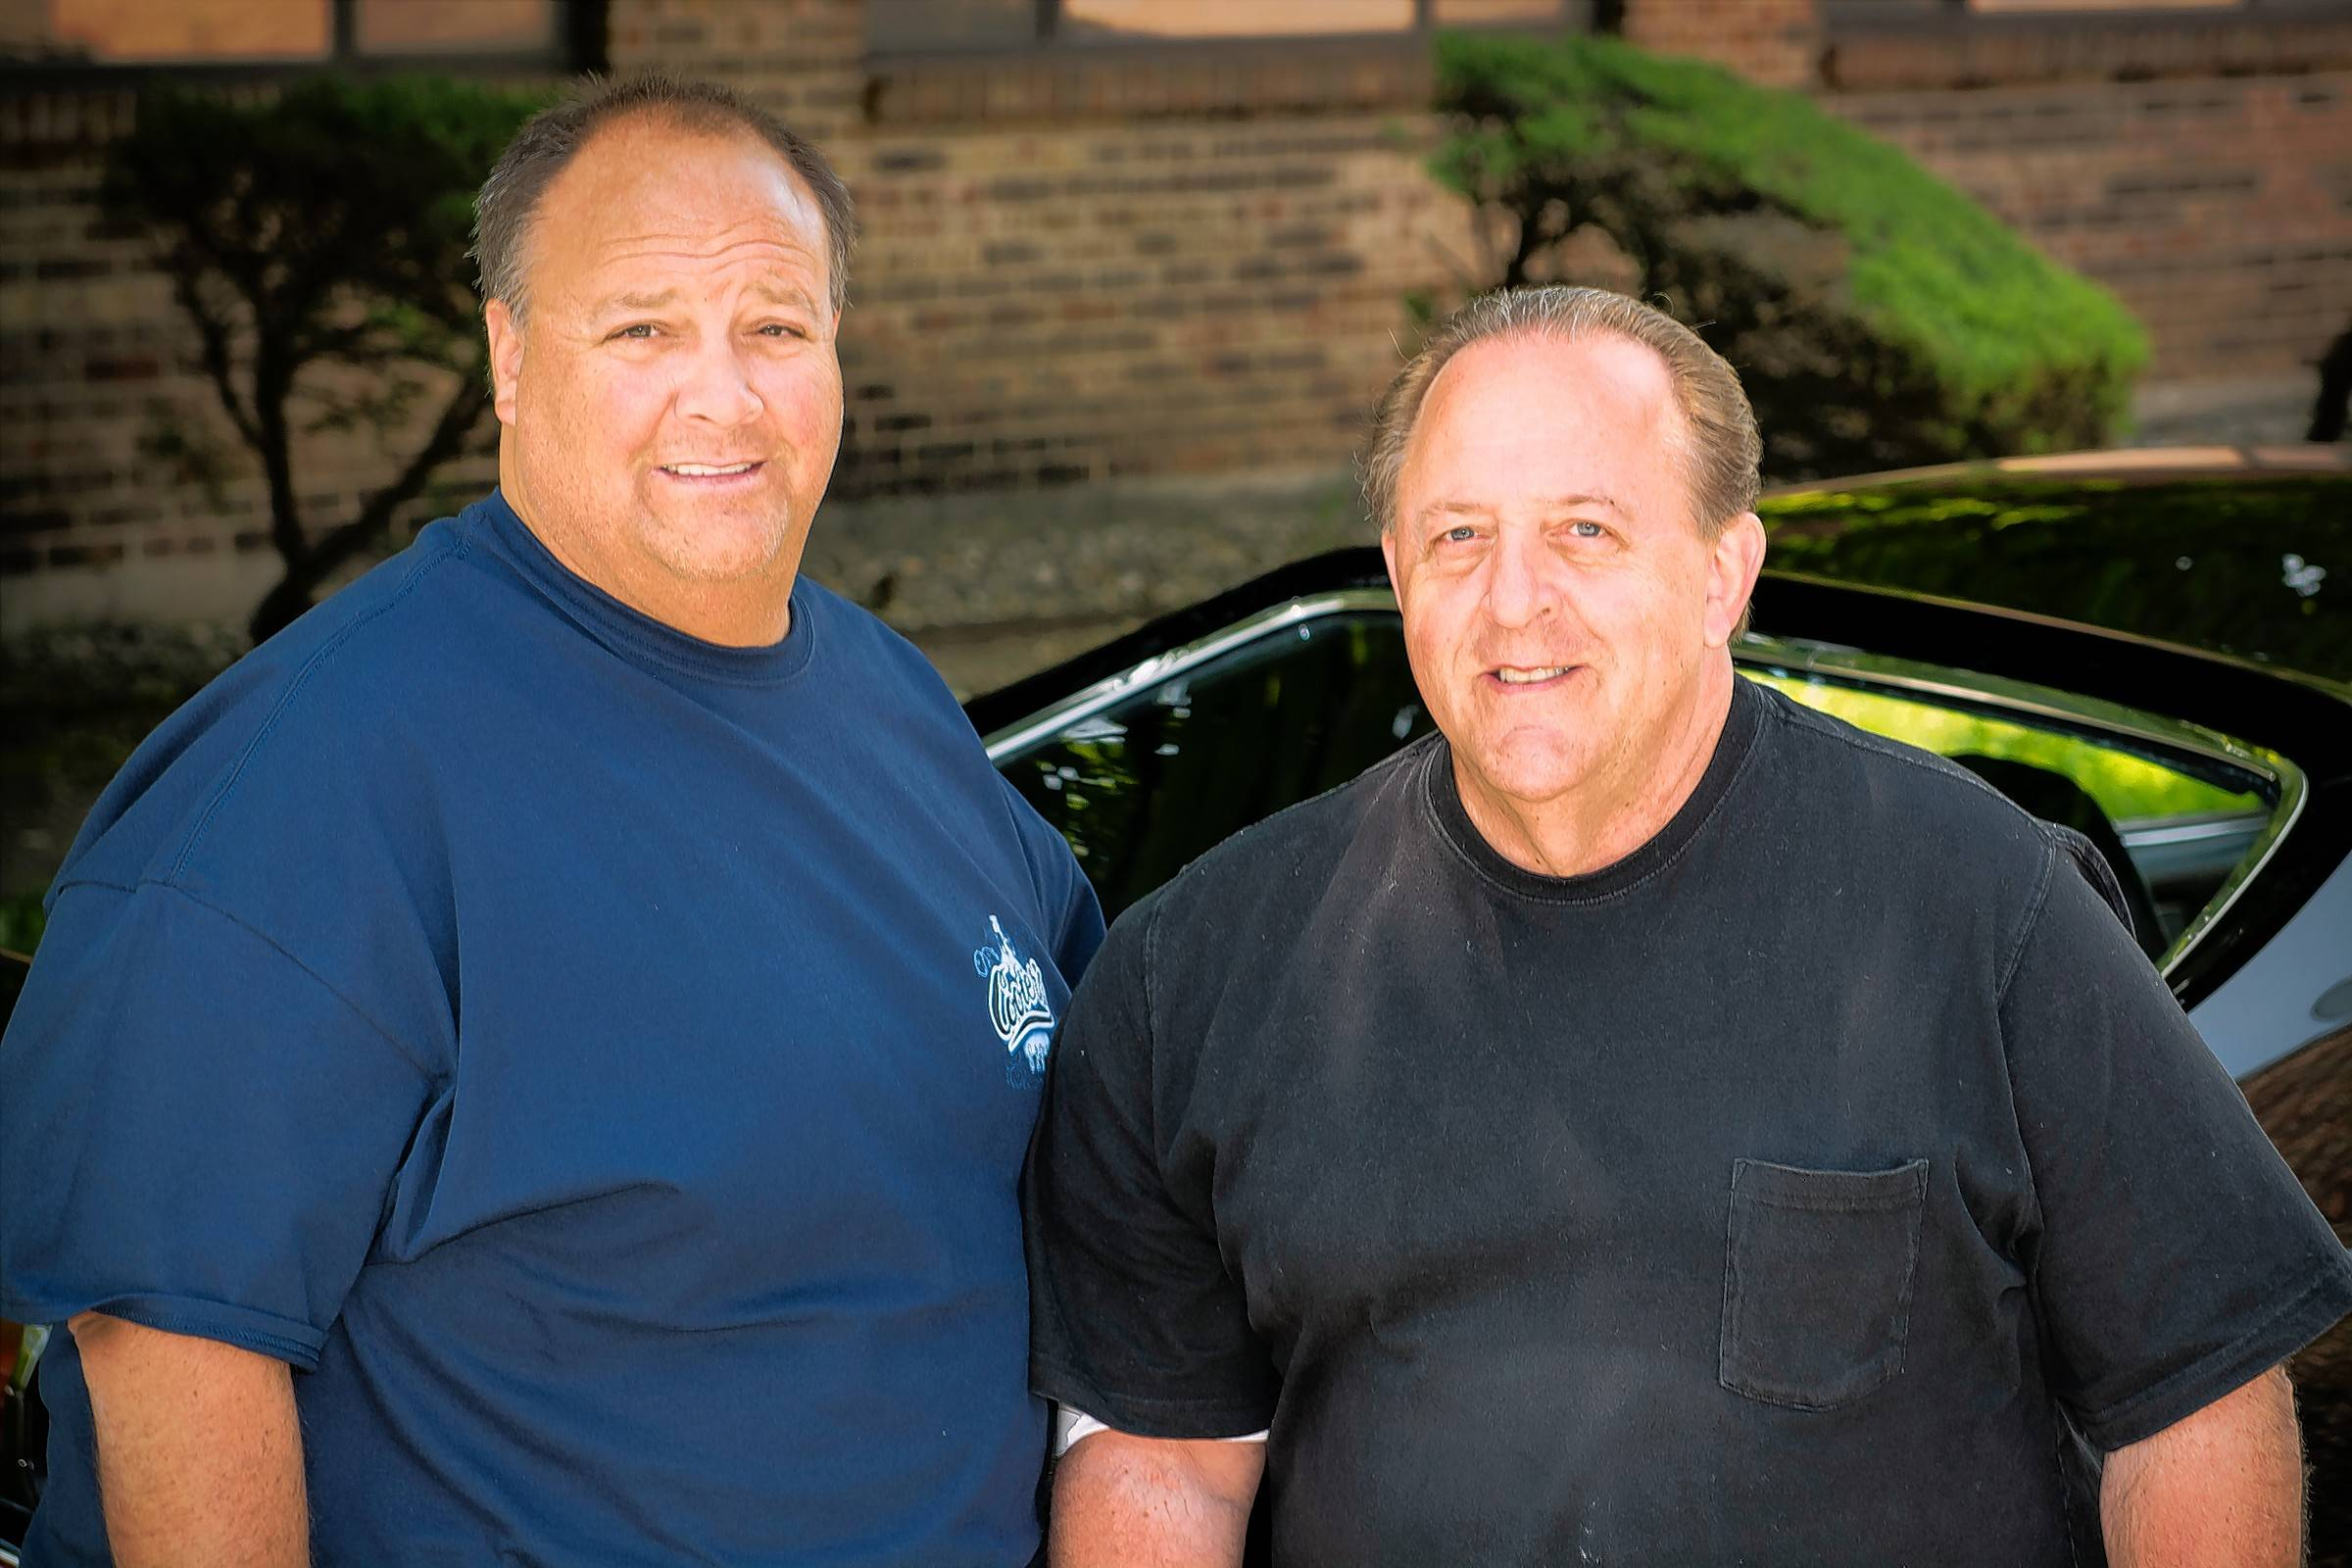 David Schmadebeck and his father, Dave, have enjoyed restoring cars through the years.